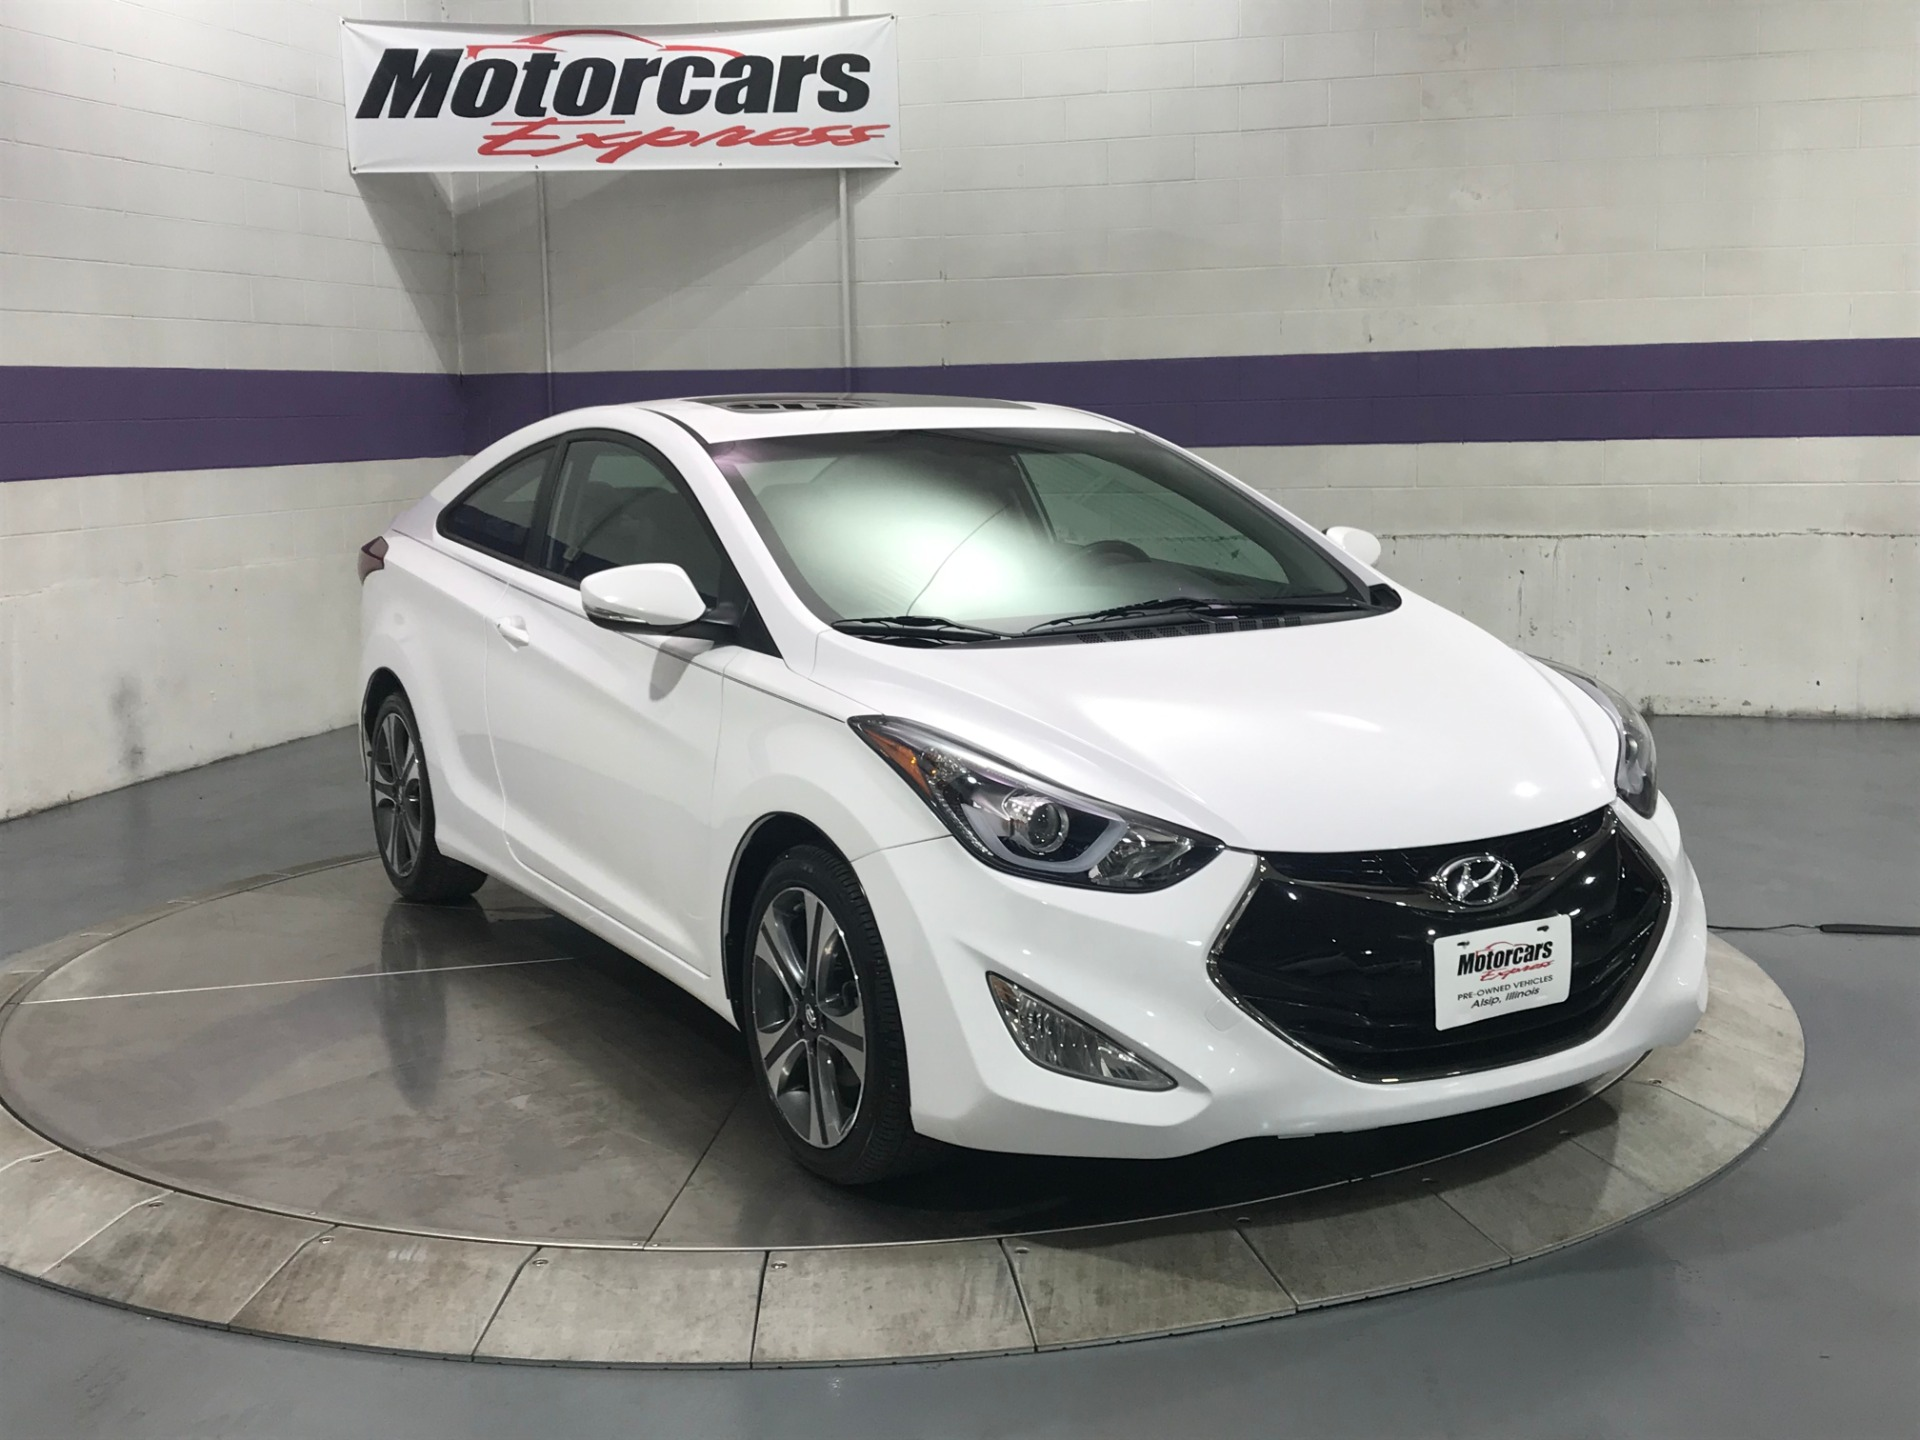 Hyundai Elantra Coupe >> 2014 Hyundai Elantra Coupe Stock 24943 For Sale Near Alsip Il